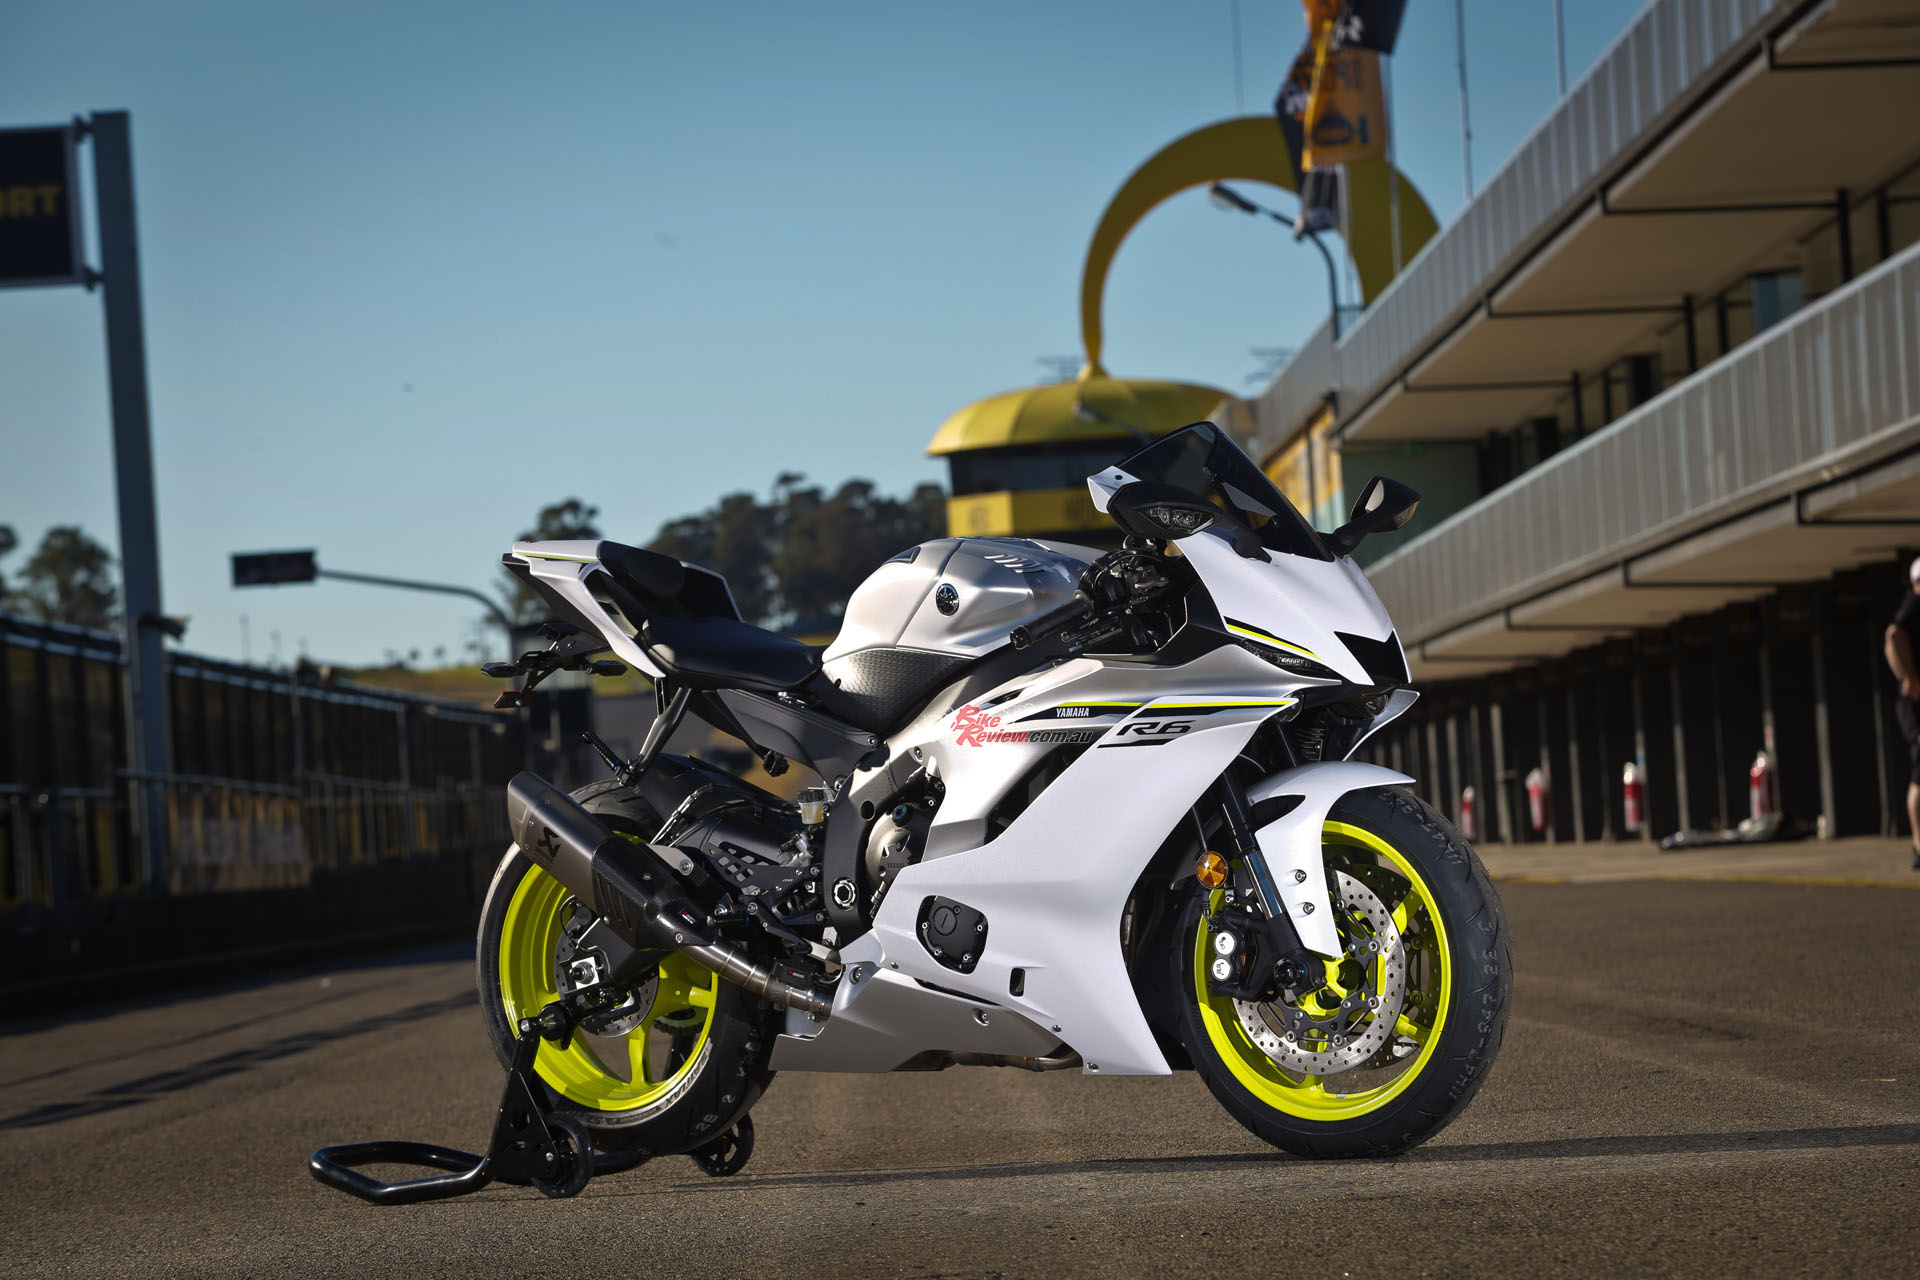 The 2017 Yamaha YZF R6 Here In Stunning Intensity White